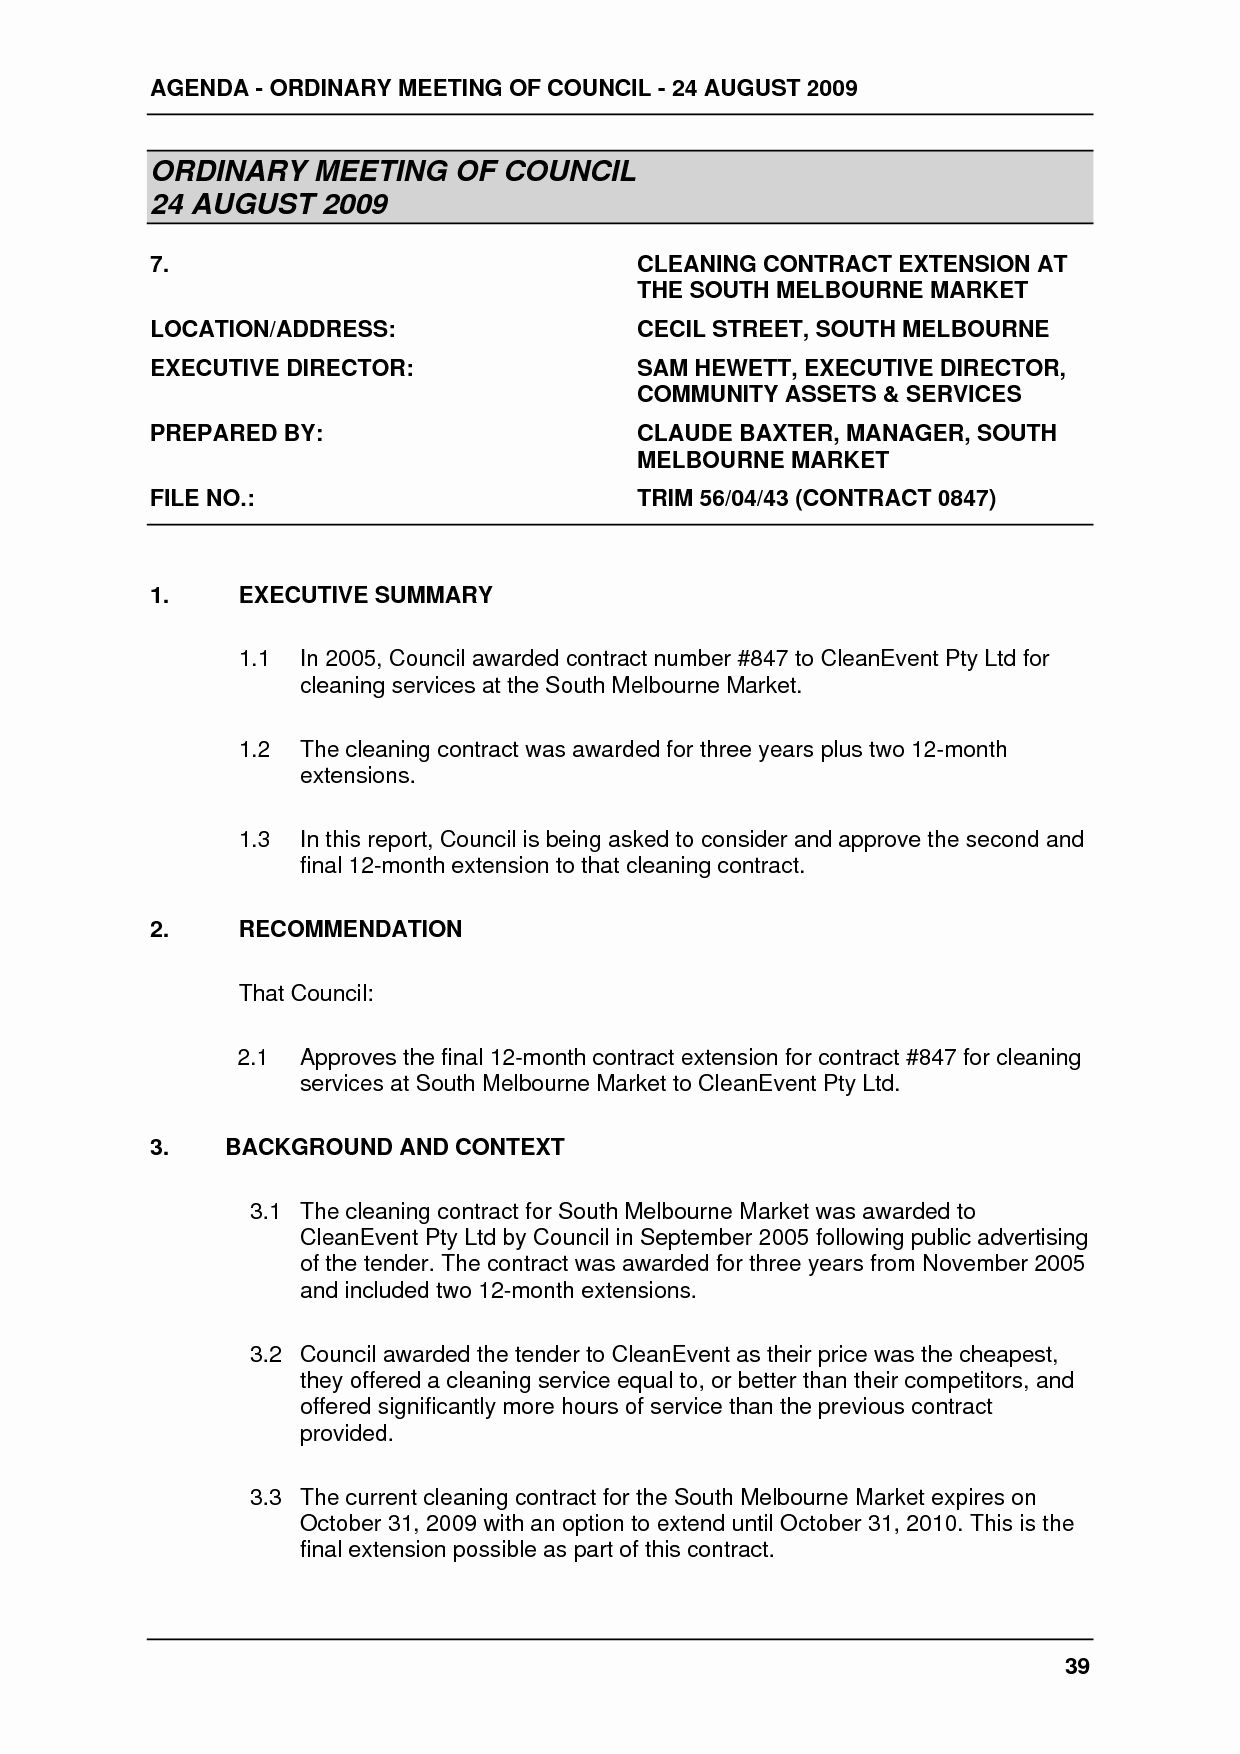 Carpet Cleaning Contract Template Unique Cleaning Contract